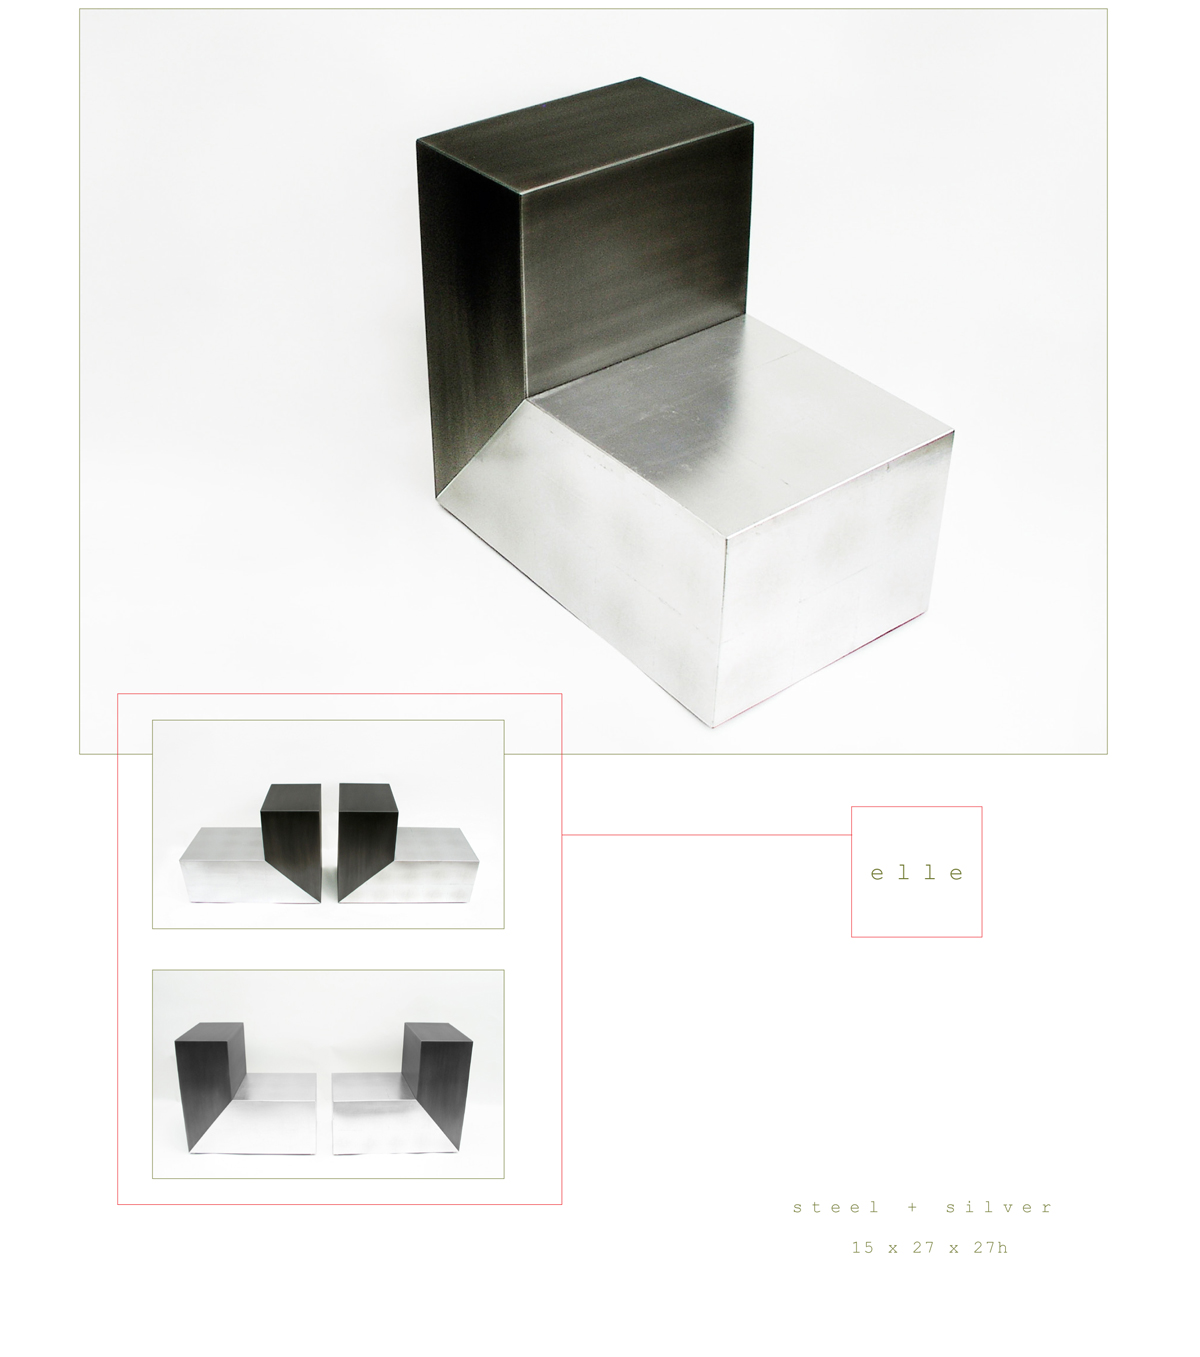 Elle is a contemporary end table made out of steel and silver measuring 15 x 27 x 27 inches made by Chad Manley Design.